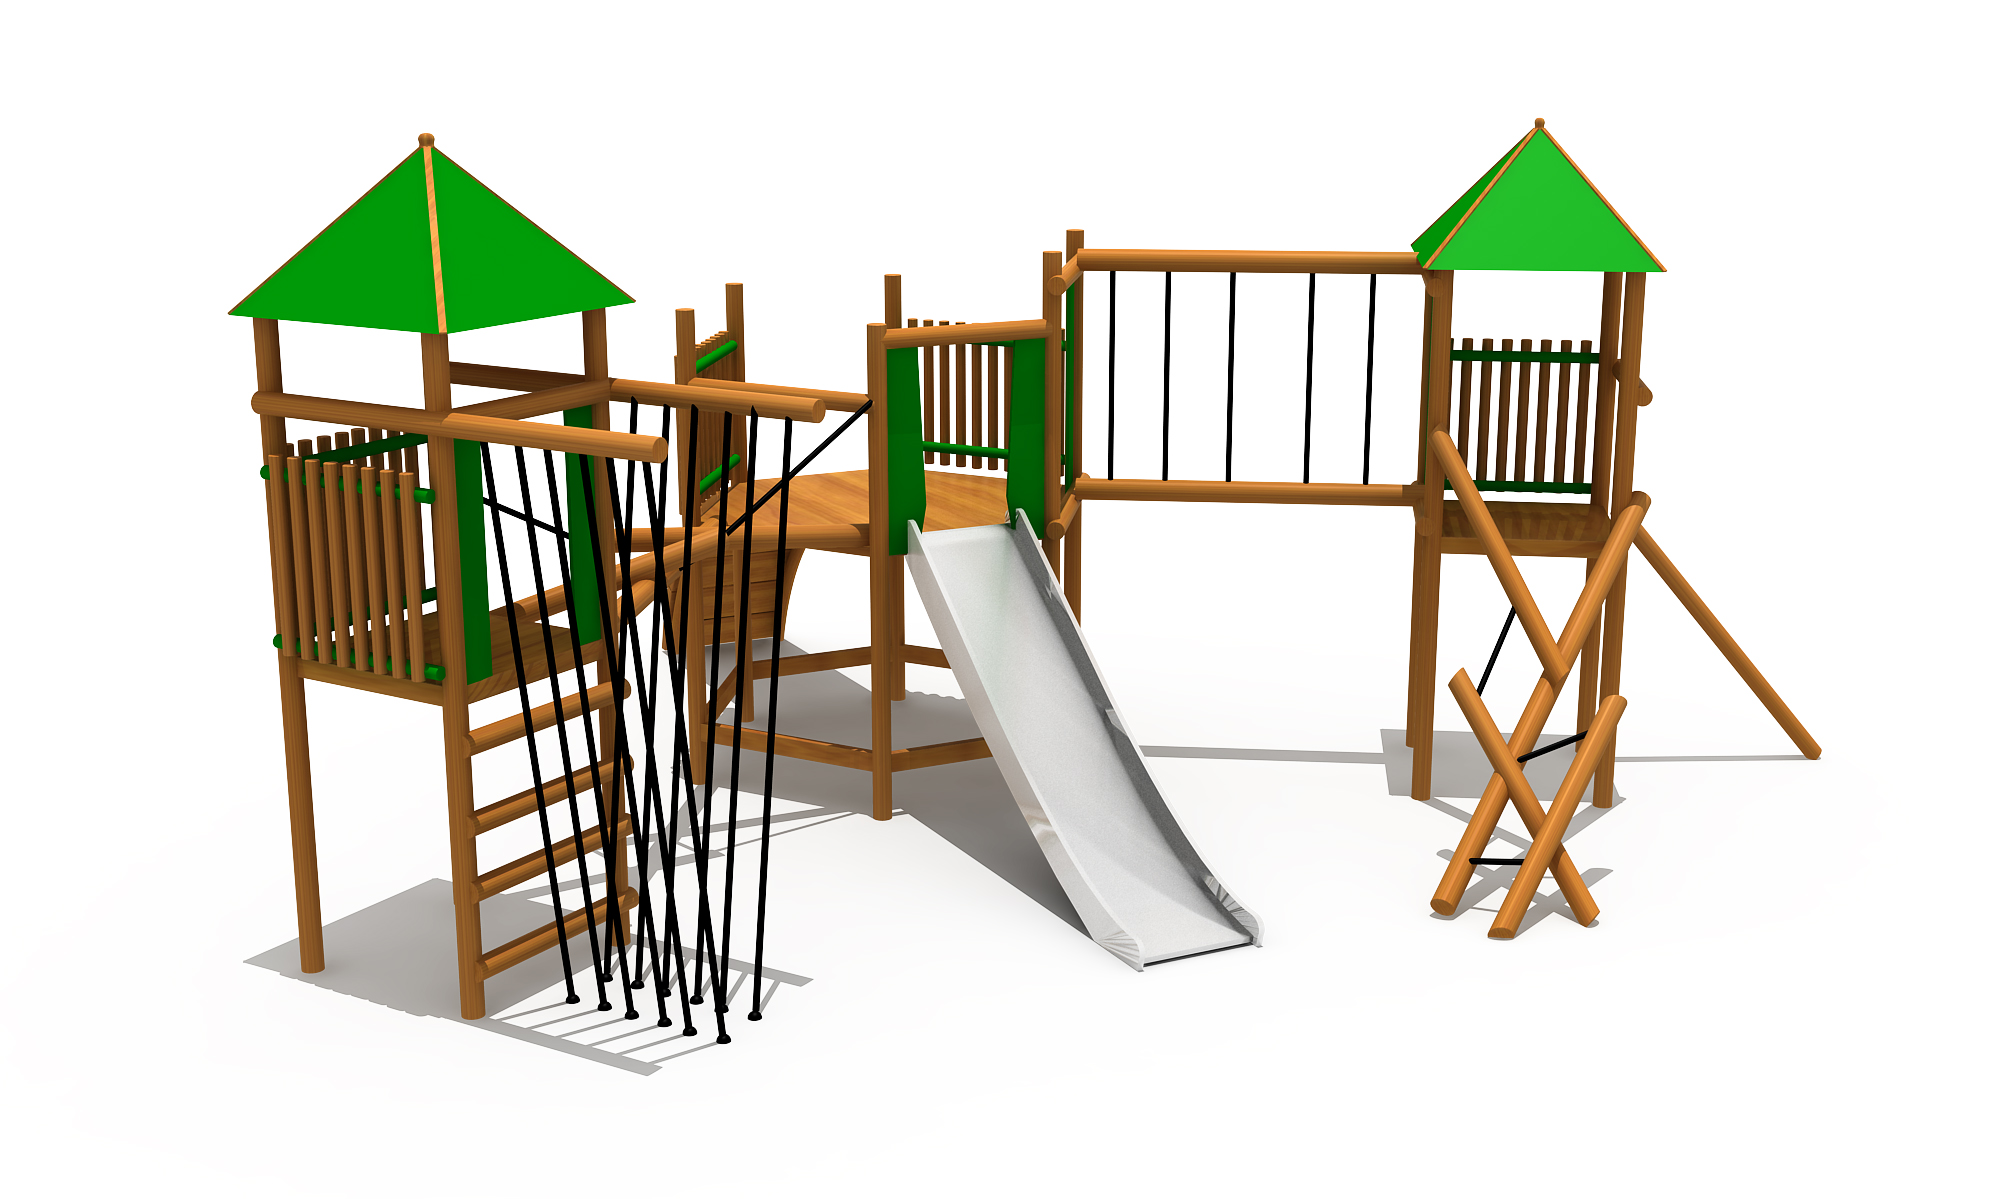 how to install the indoor playground by yourself?